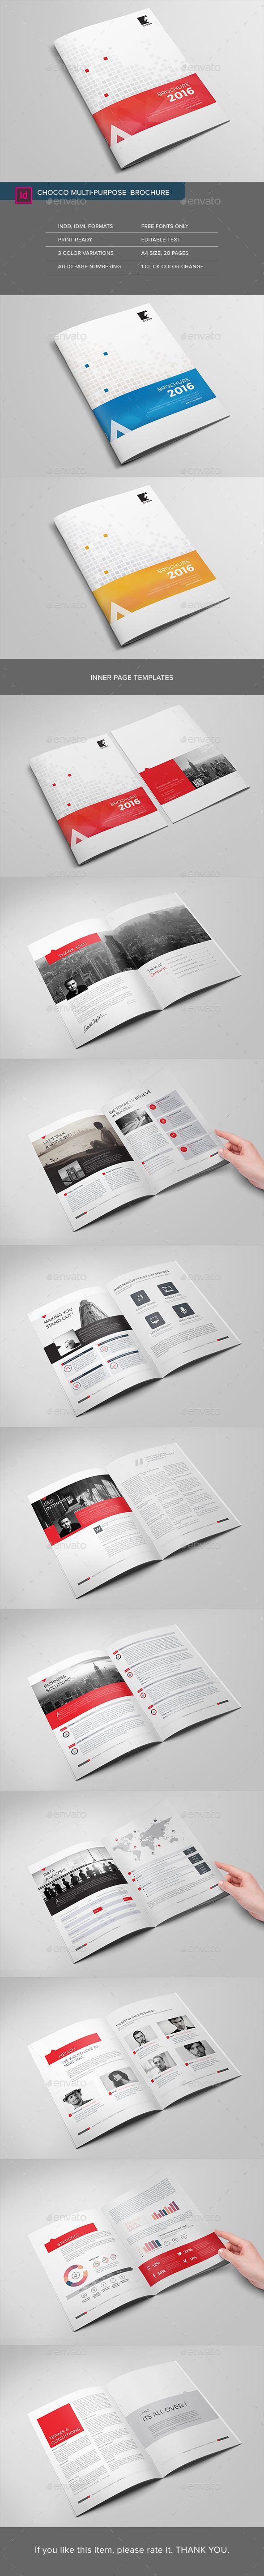 Chocco Multipurpose Brochure  -  InDesign Template • Only available here! ➝ https://graphicriver.net/item/chocco-multipurpose-brochure/15507375?ref=pxcr